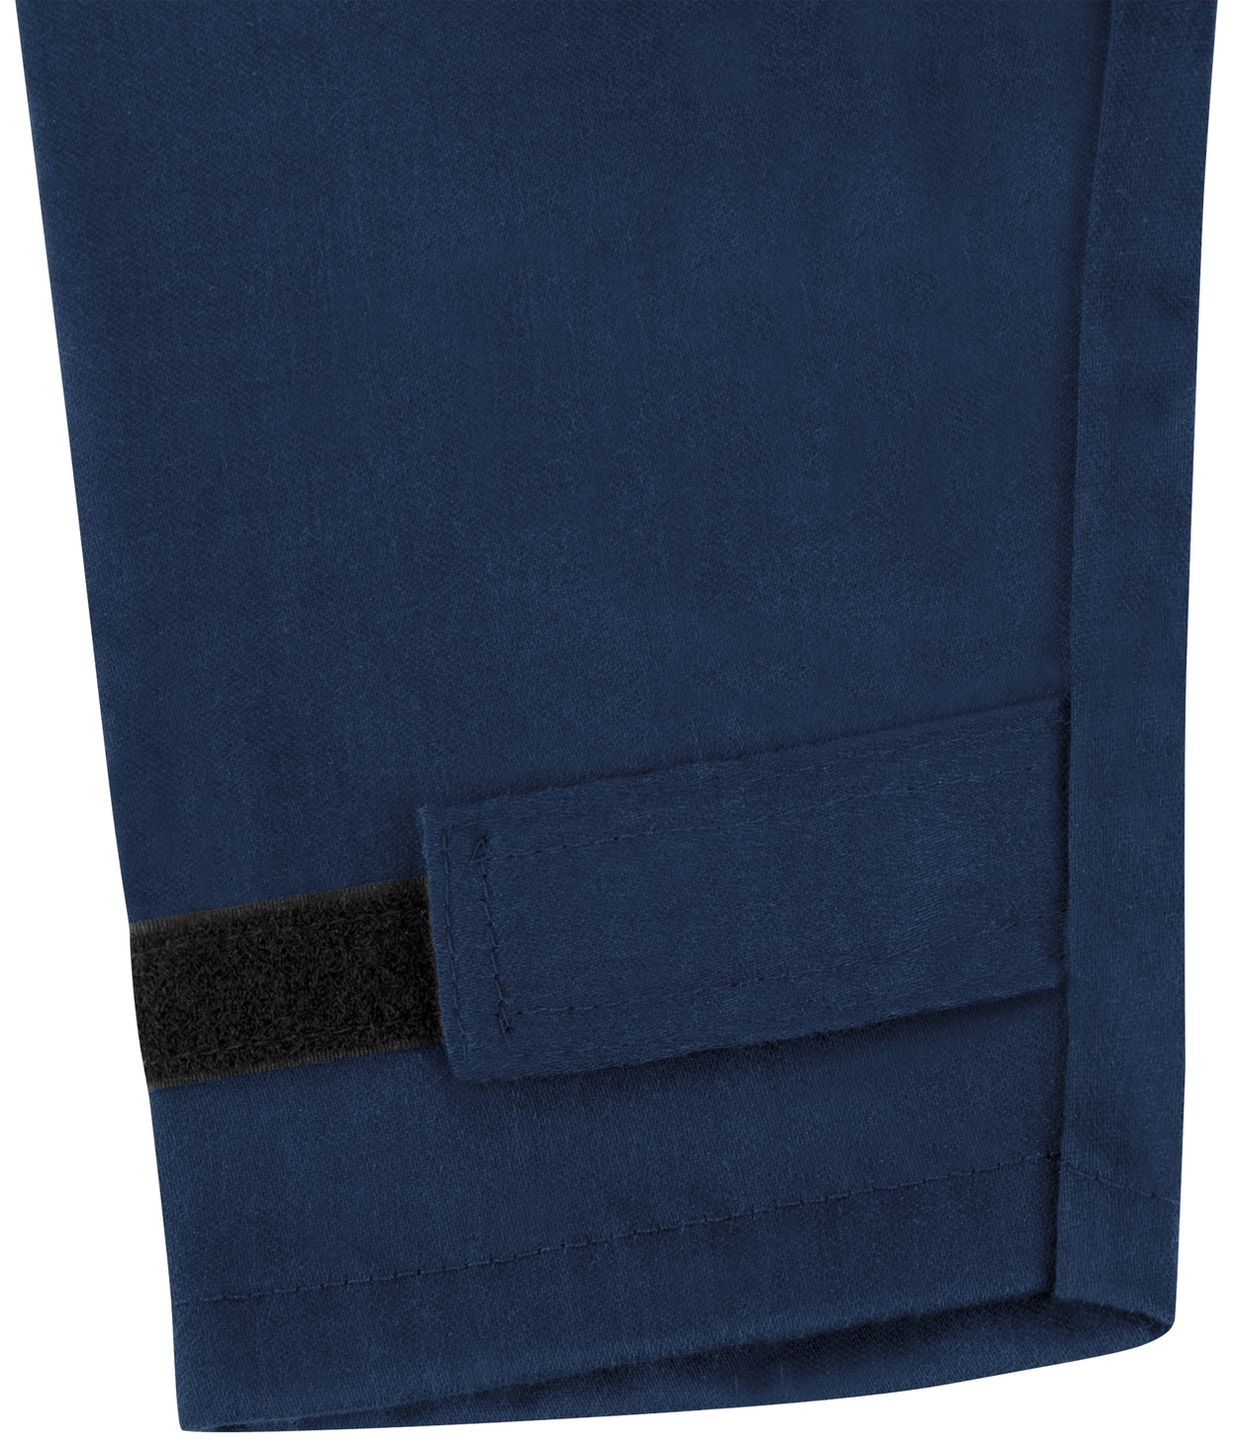 bulwark-fr-coverall-clz4-lightweight-excel-comfortouch-deluxe-navy-example.jpg